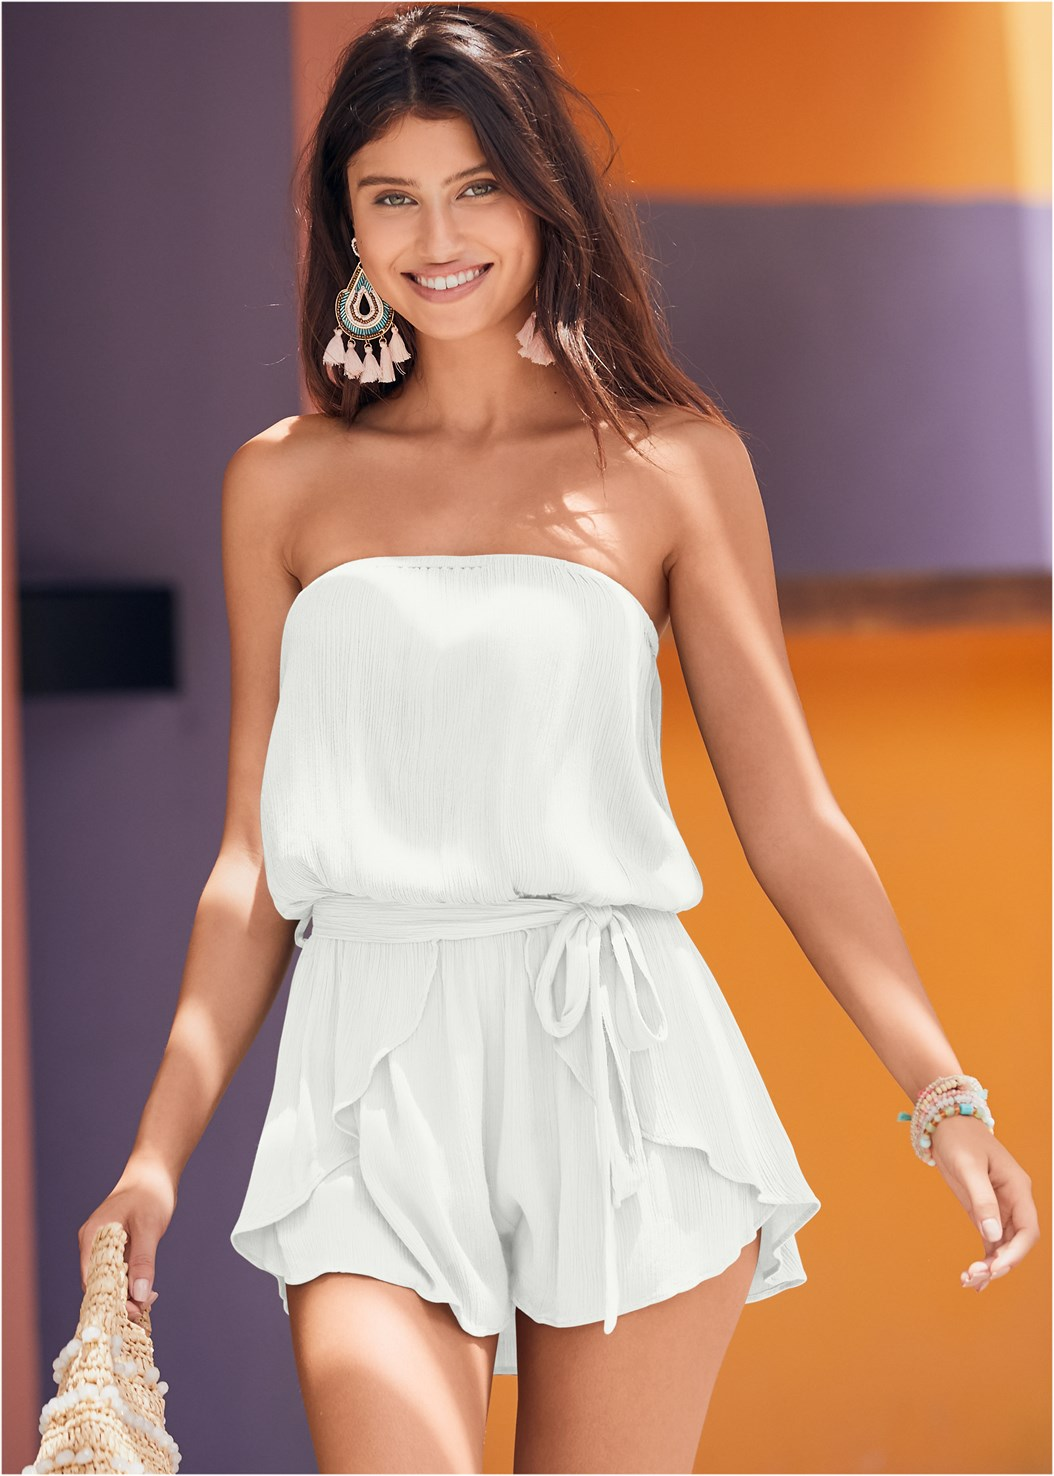 Drape Cover-Up Romper,Strappy Bandeau Top